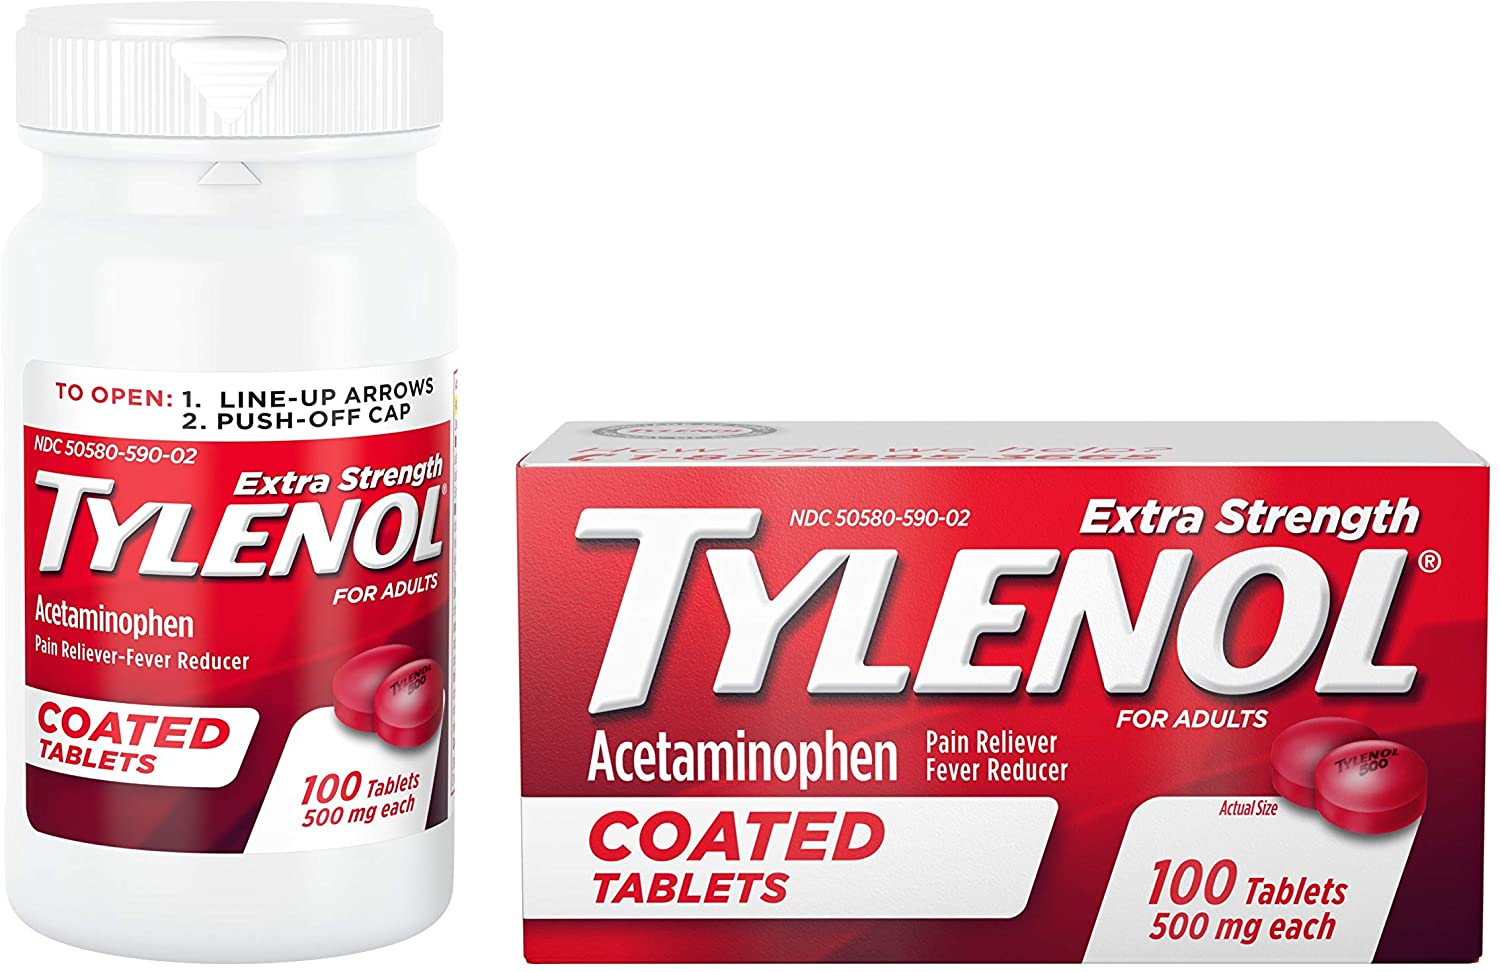 Tylenol Extra Strength Coated Tablets - 100 Tablet